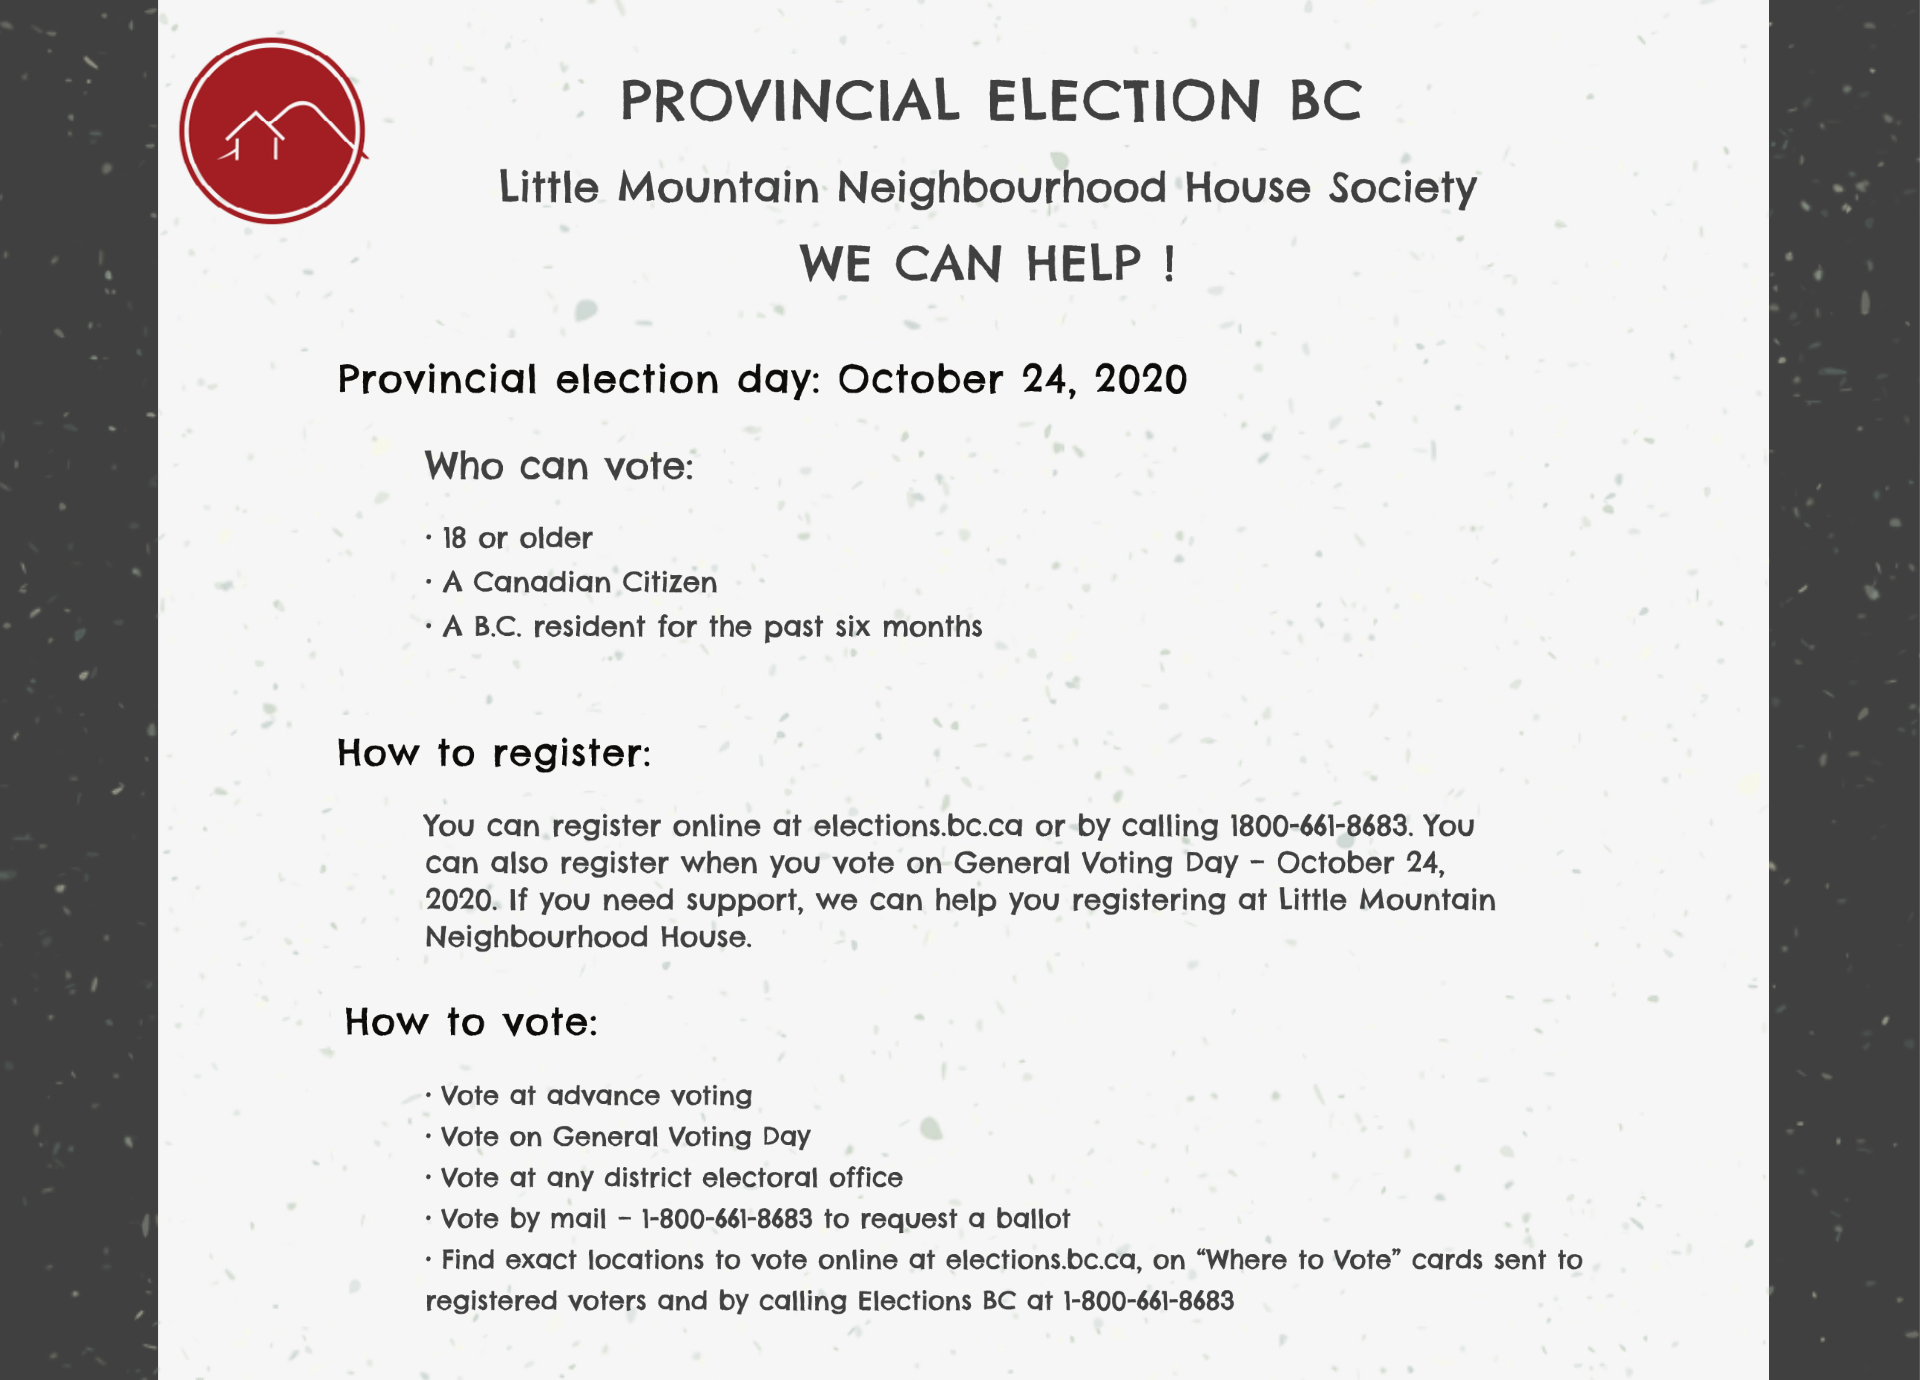 Poster for Provincial election